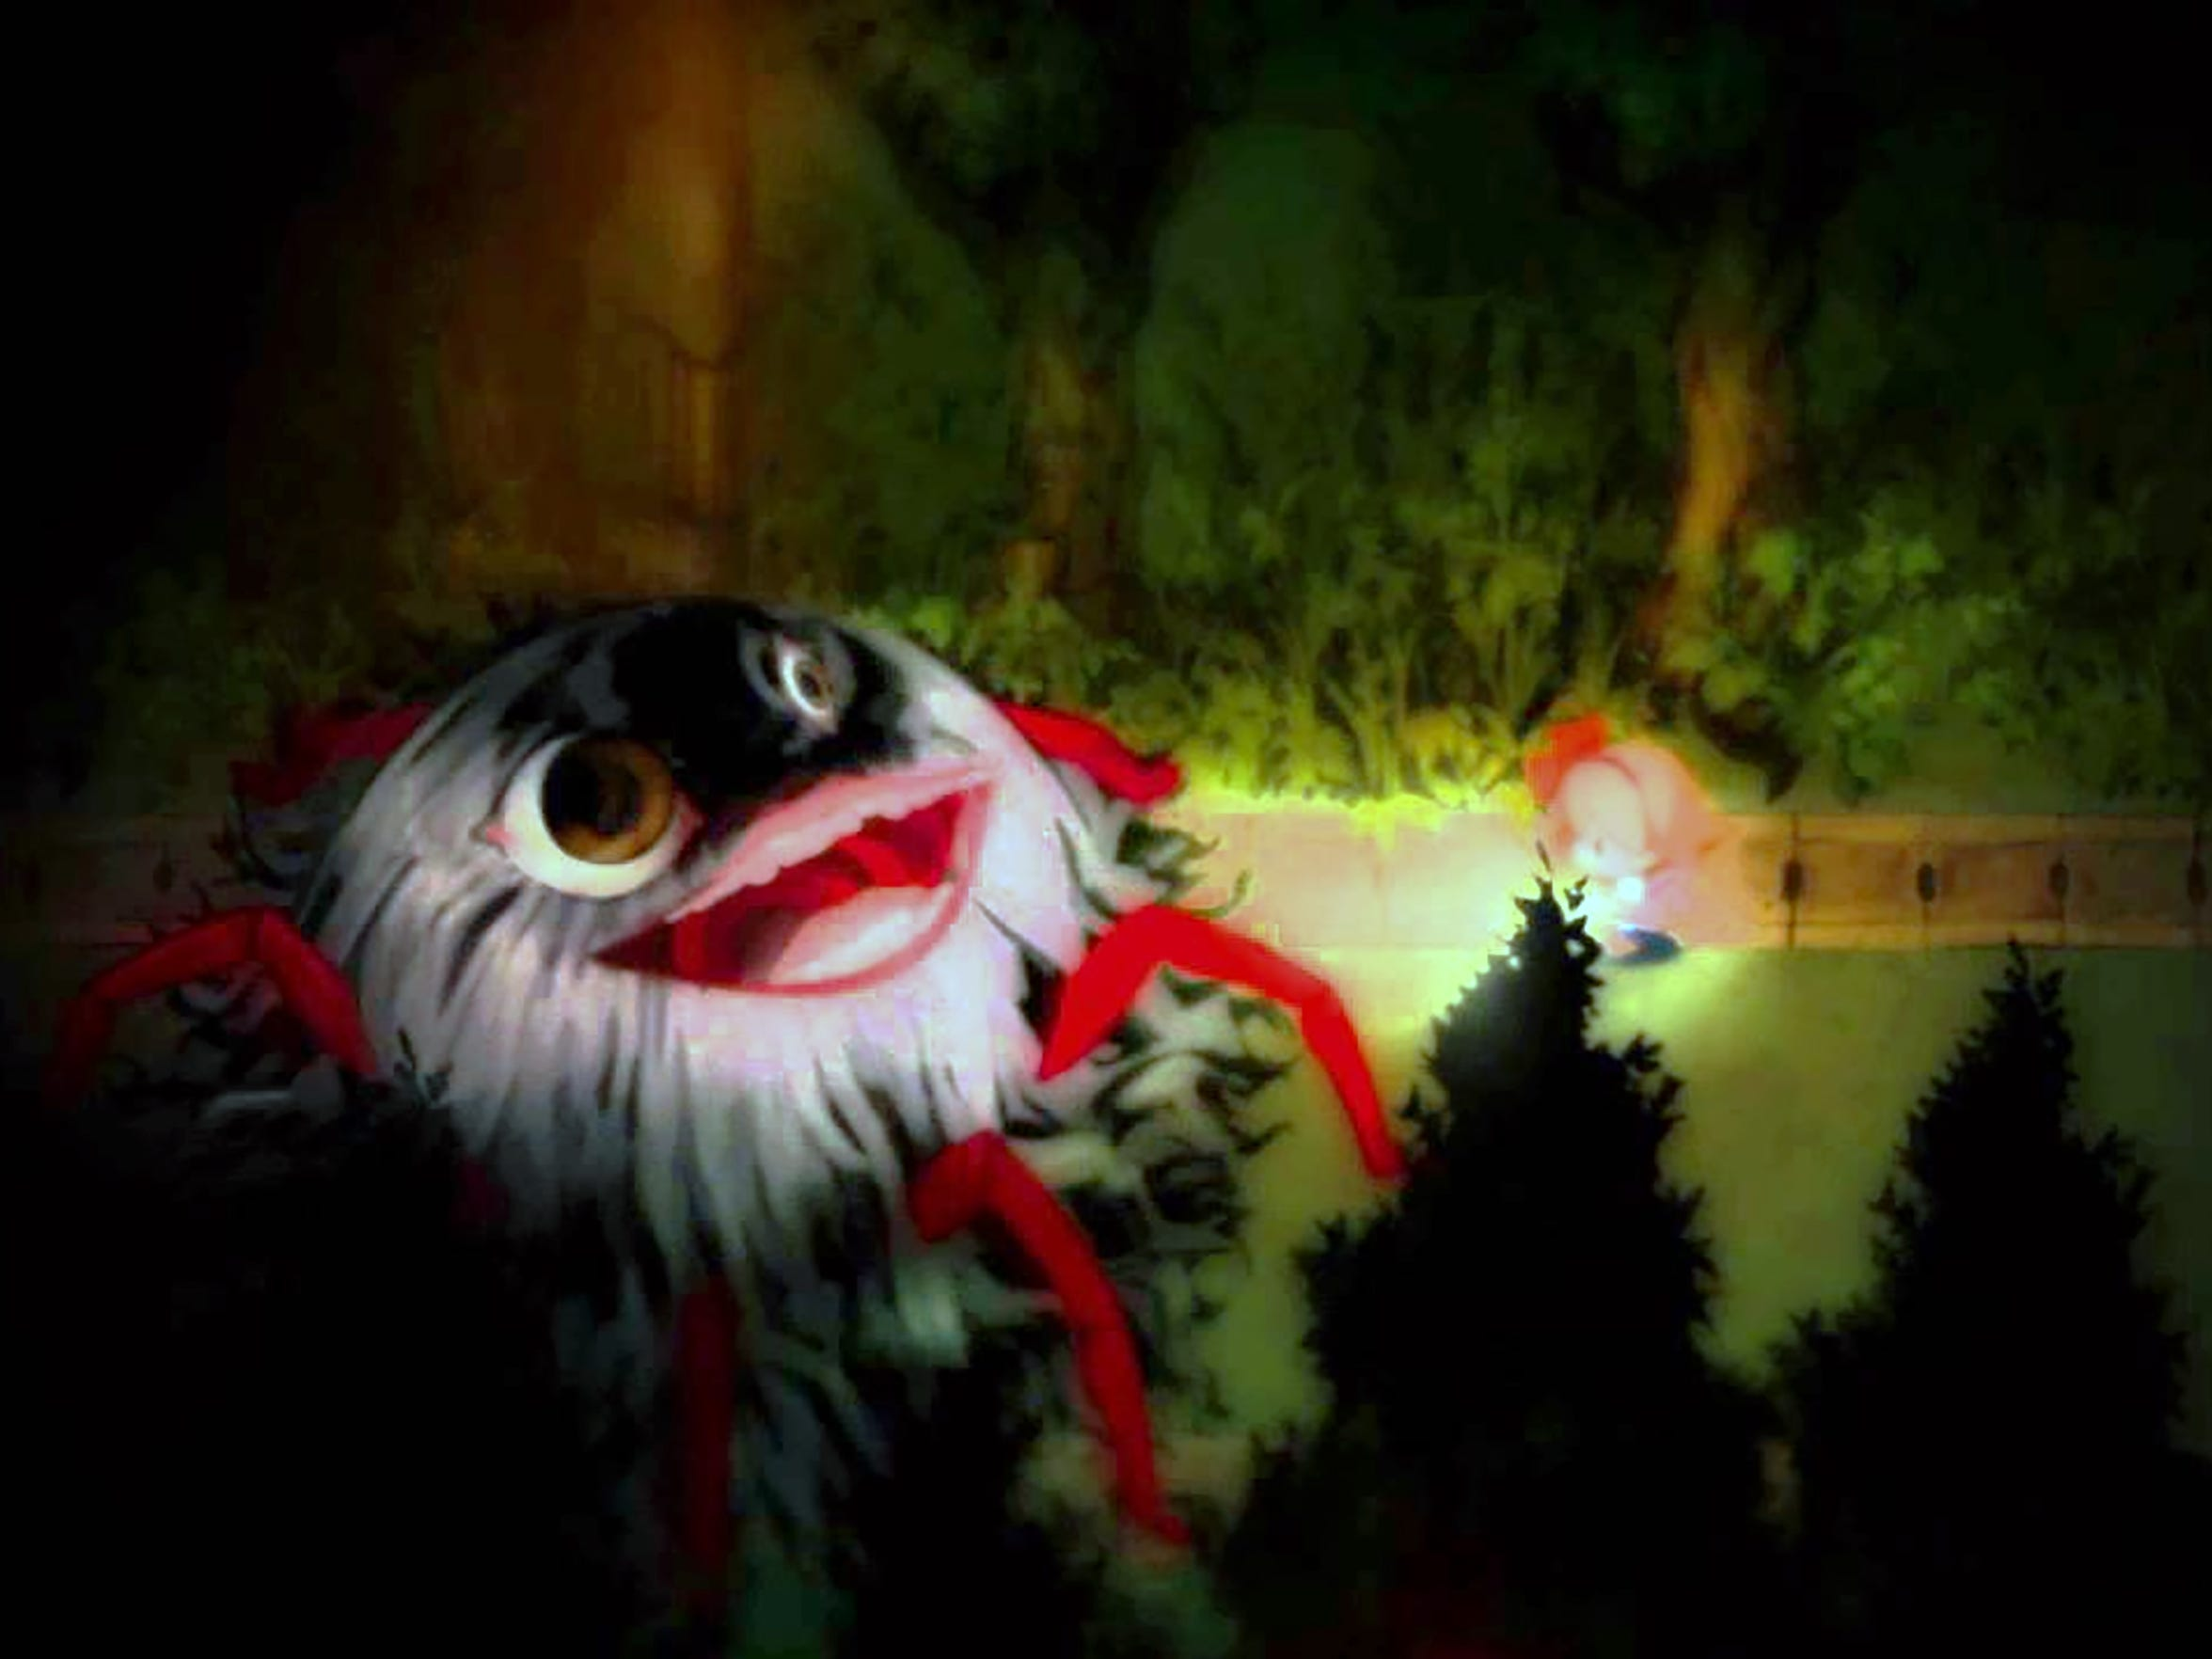 Creepy monsters abound in Yomawari Night Alone.